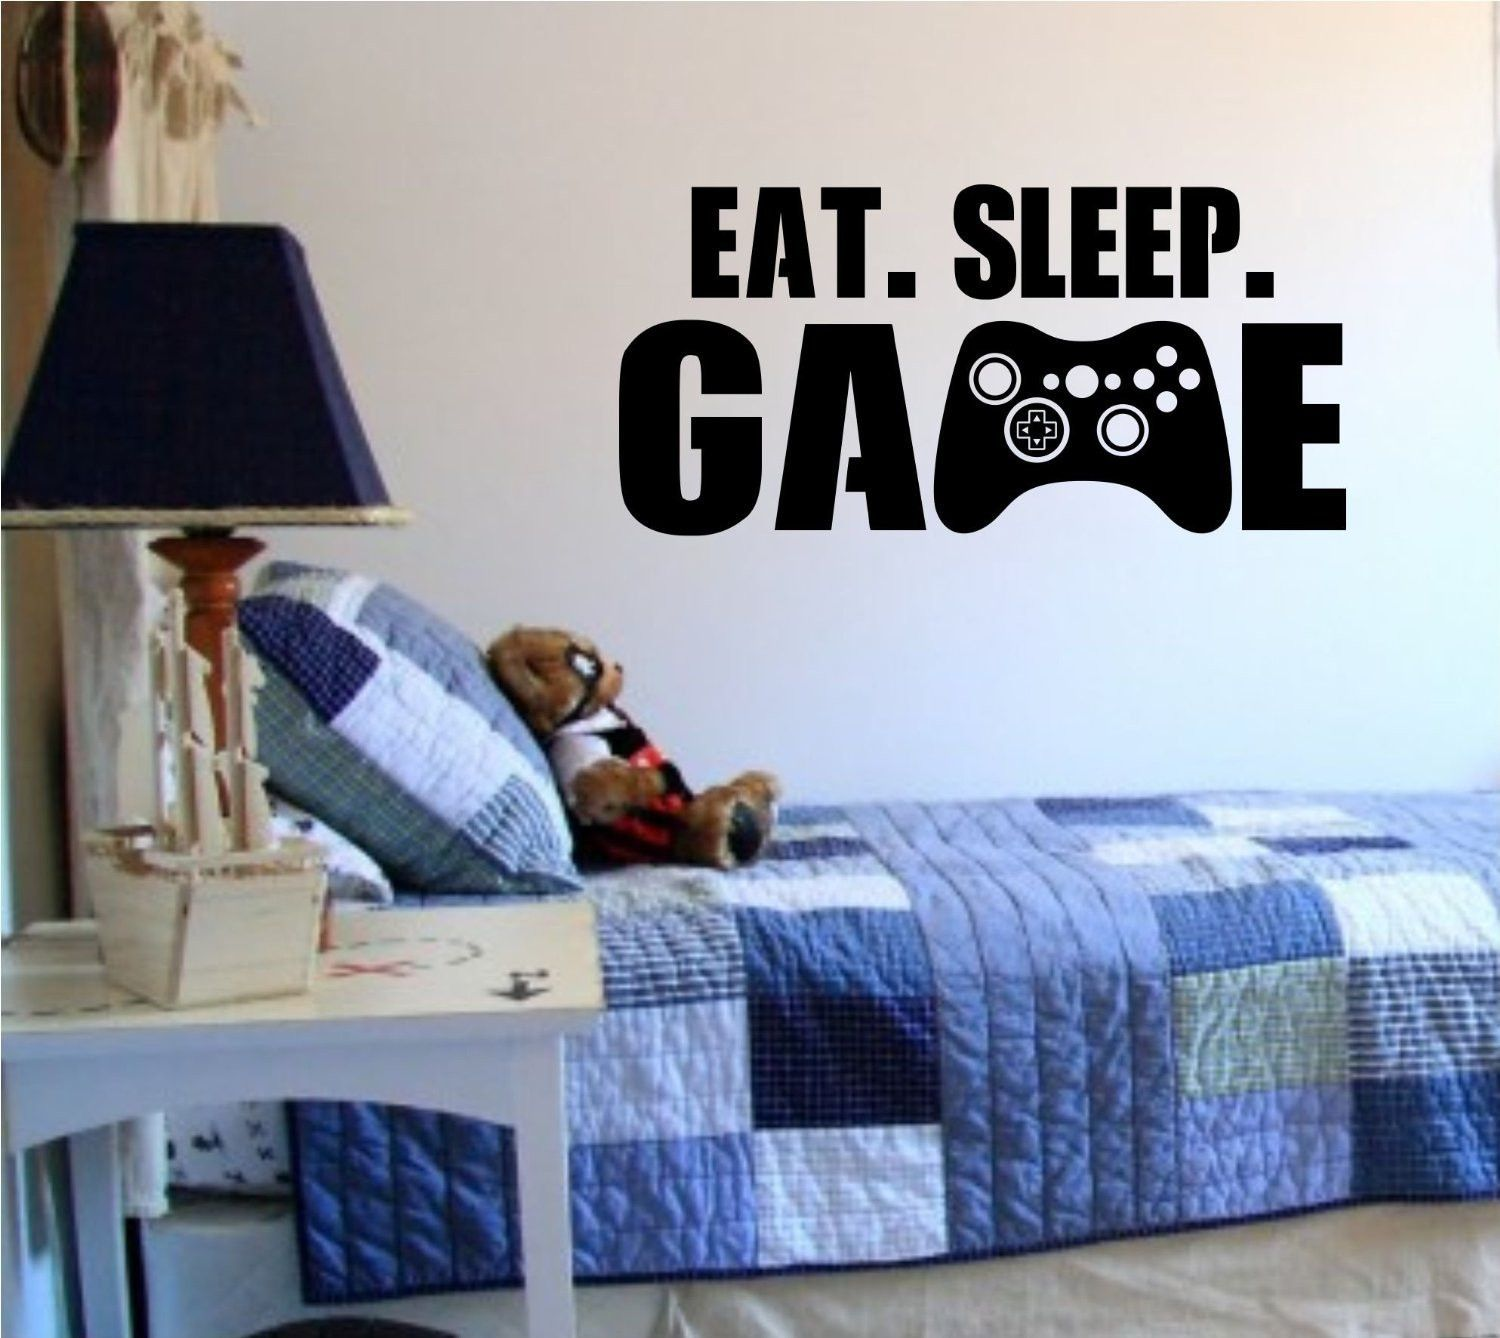 Bedroom Wall Decor For Teenagers Boy Bedroom Roof Ceiling Rangers Wallpaper Bedroom Bedroom Ideas For Young Adults Girls Tumblr: Eat Sleep Game Version 101 Gamer Video Game Decal Sticker